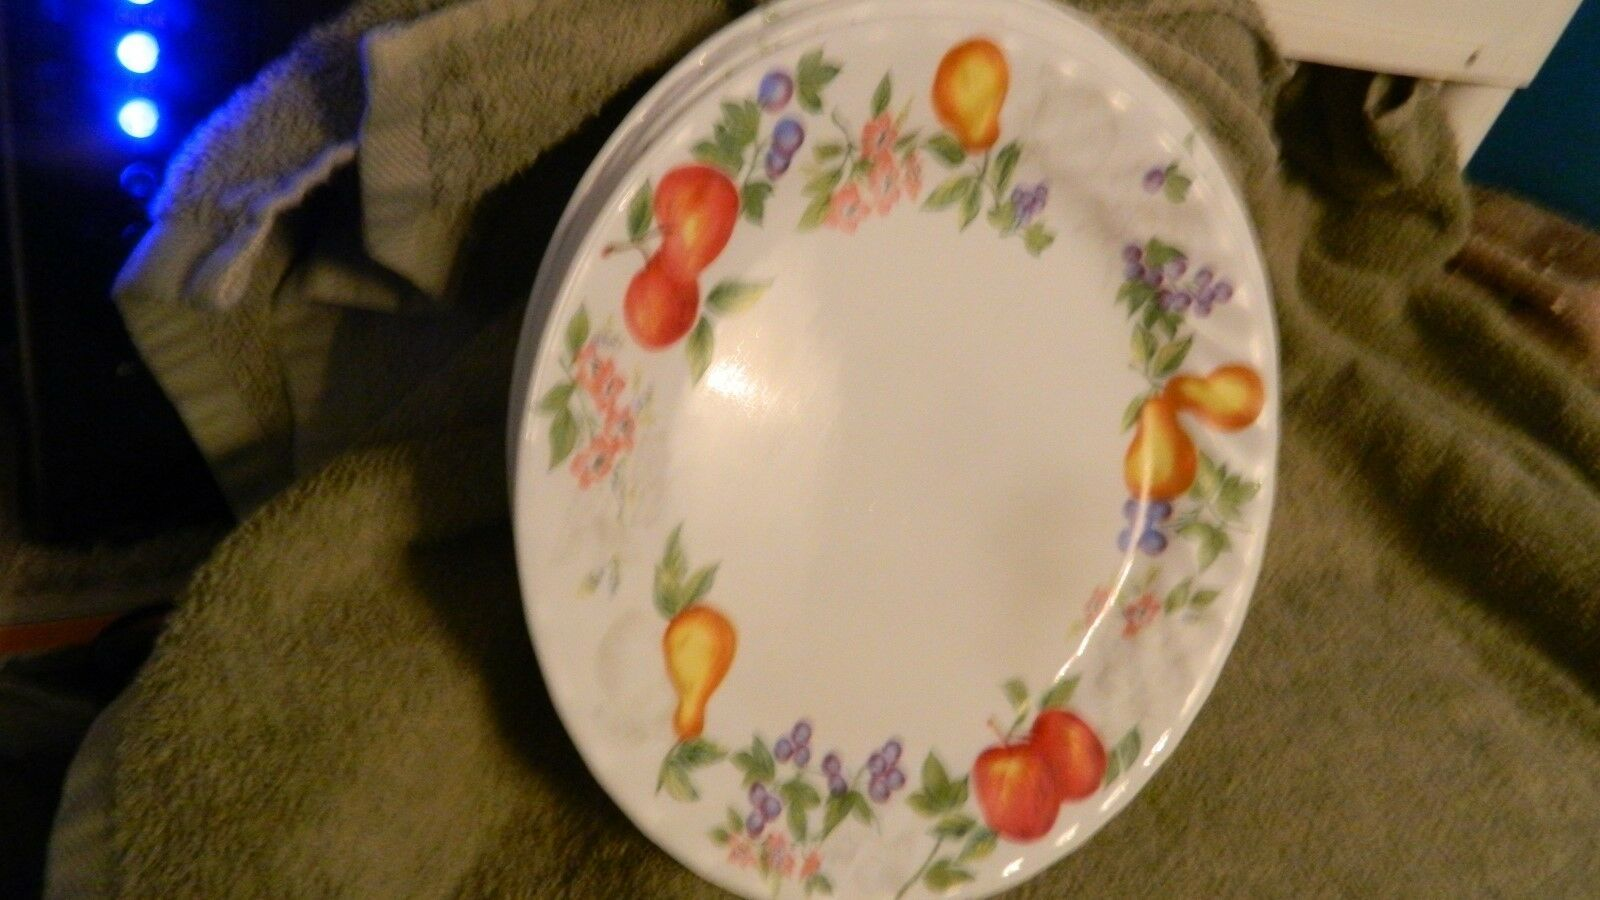 Primary image for 4 CORELLE CHUTNEY 9 INCH LUNCH / SALAD PLATES SWIRLED RIM NEW FREE USA SHIPPINGC